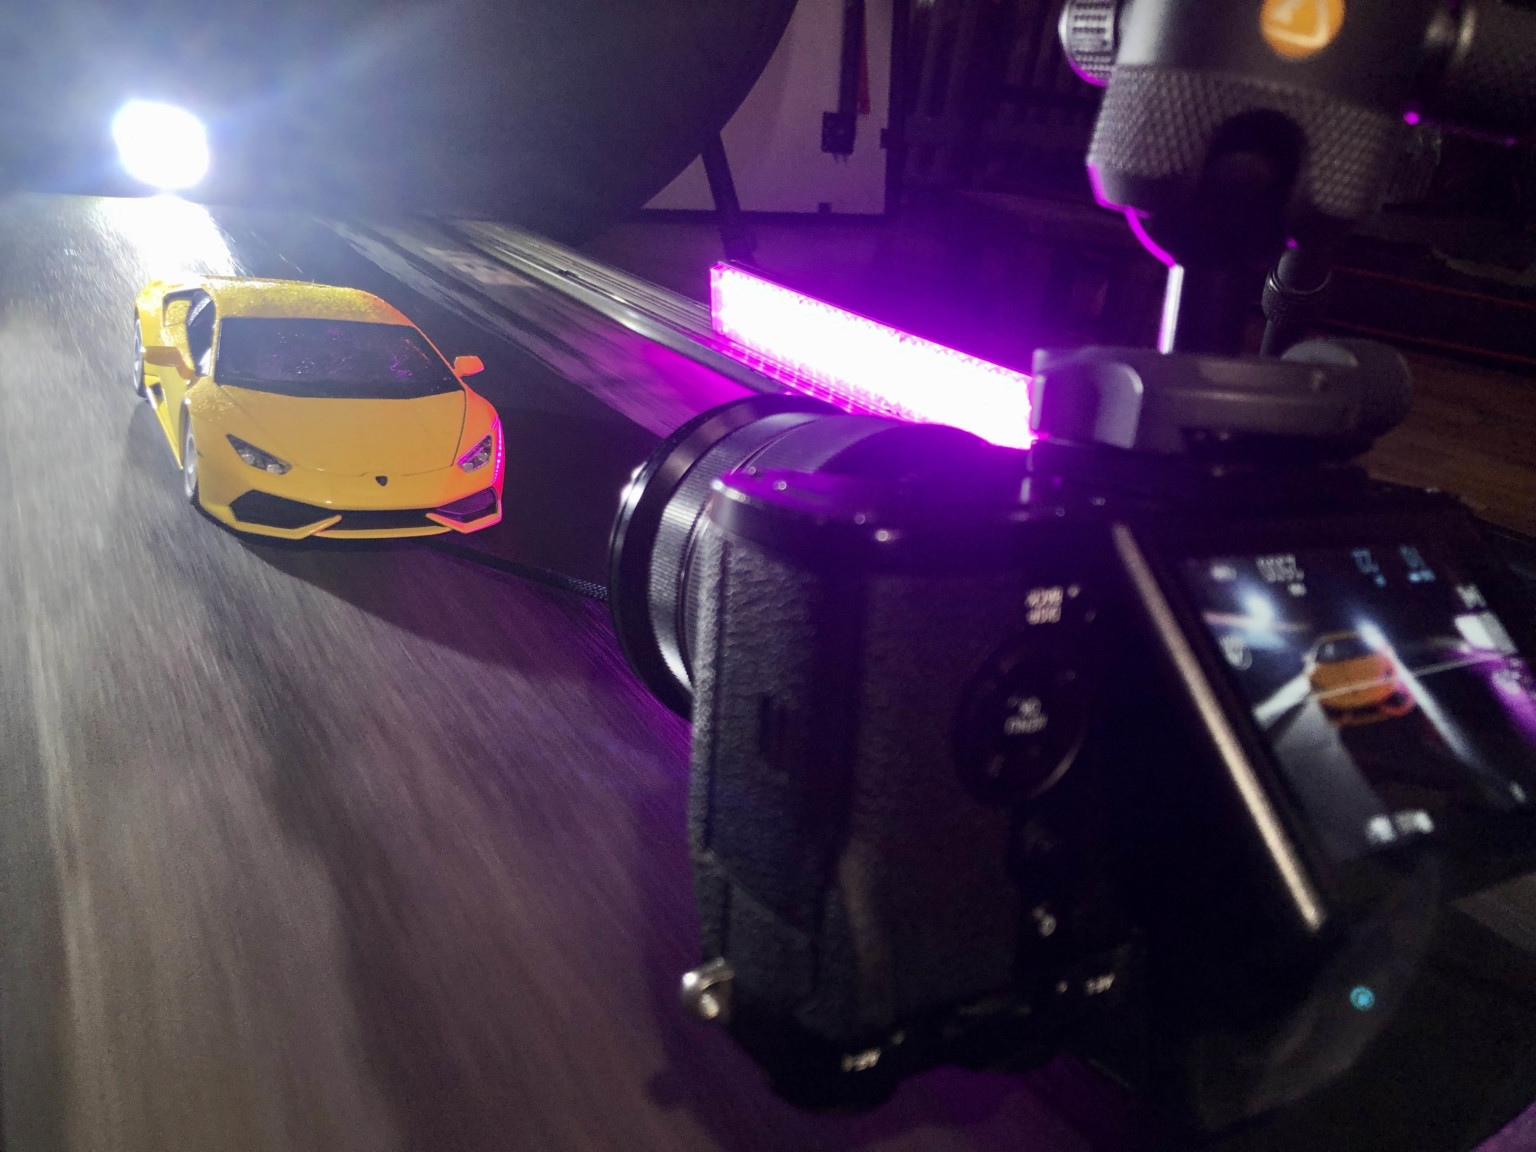 Lamborghini Toy Car Photography (1)